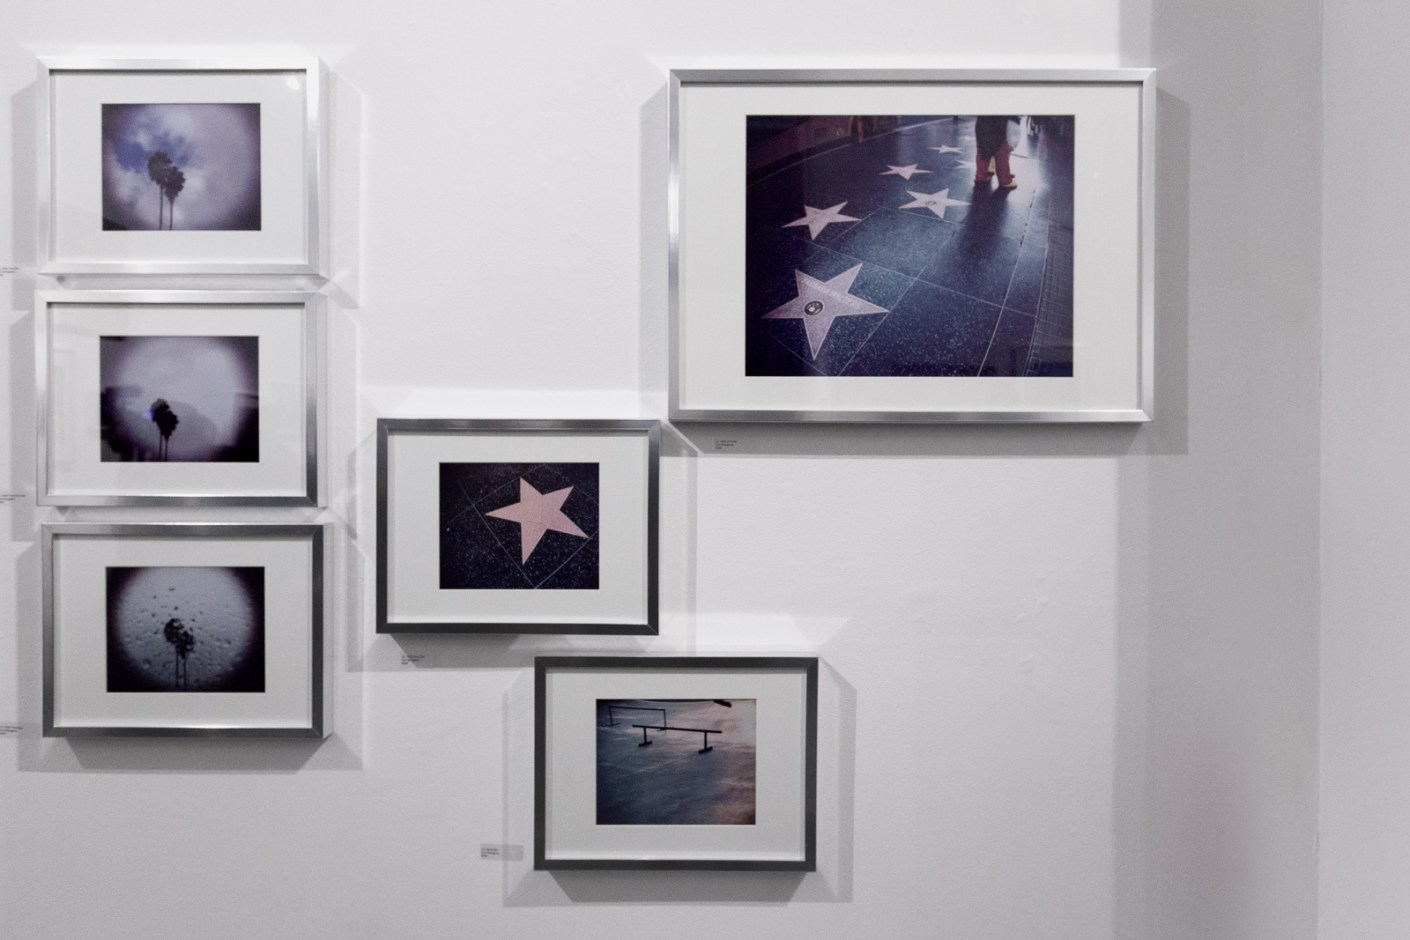 Image of LA Enhanced: An iPhoneography Exhibit Recap @ Crewest Gallery